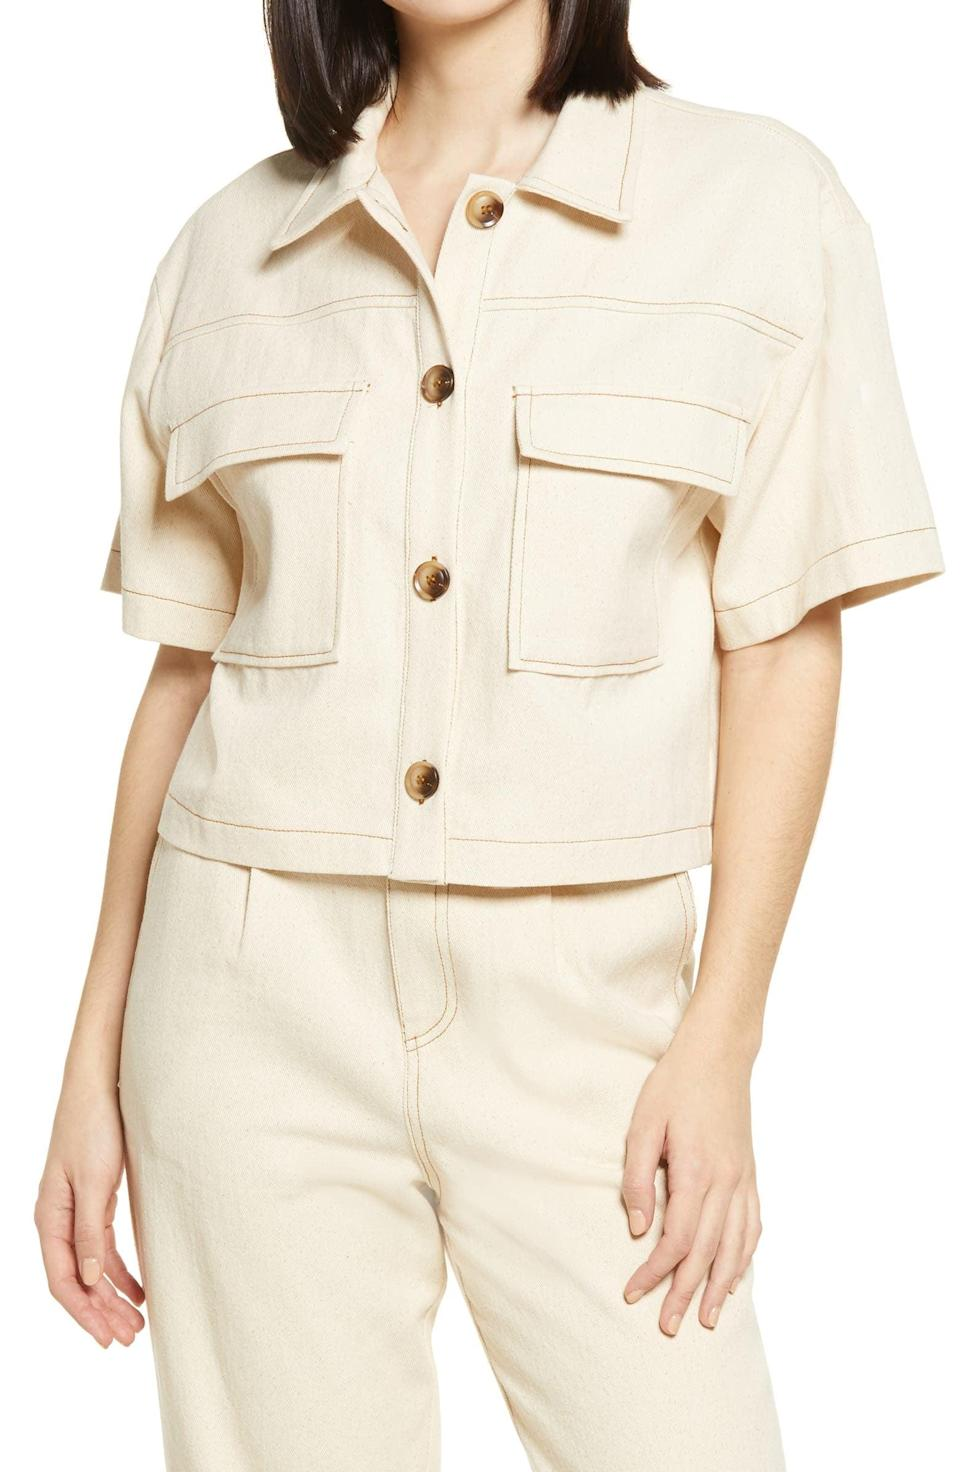 <p>This effortlessly cool <span>All in Favor Button-Up Crop Top</span> ($18, originally $45) will quickly become best friends with all your favorite bottoms.</p>